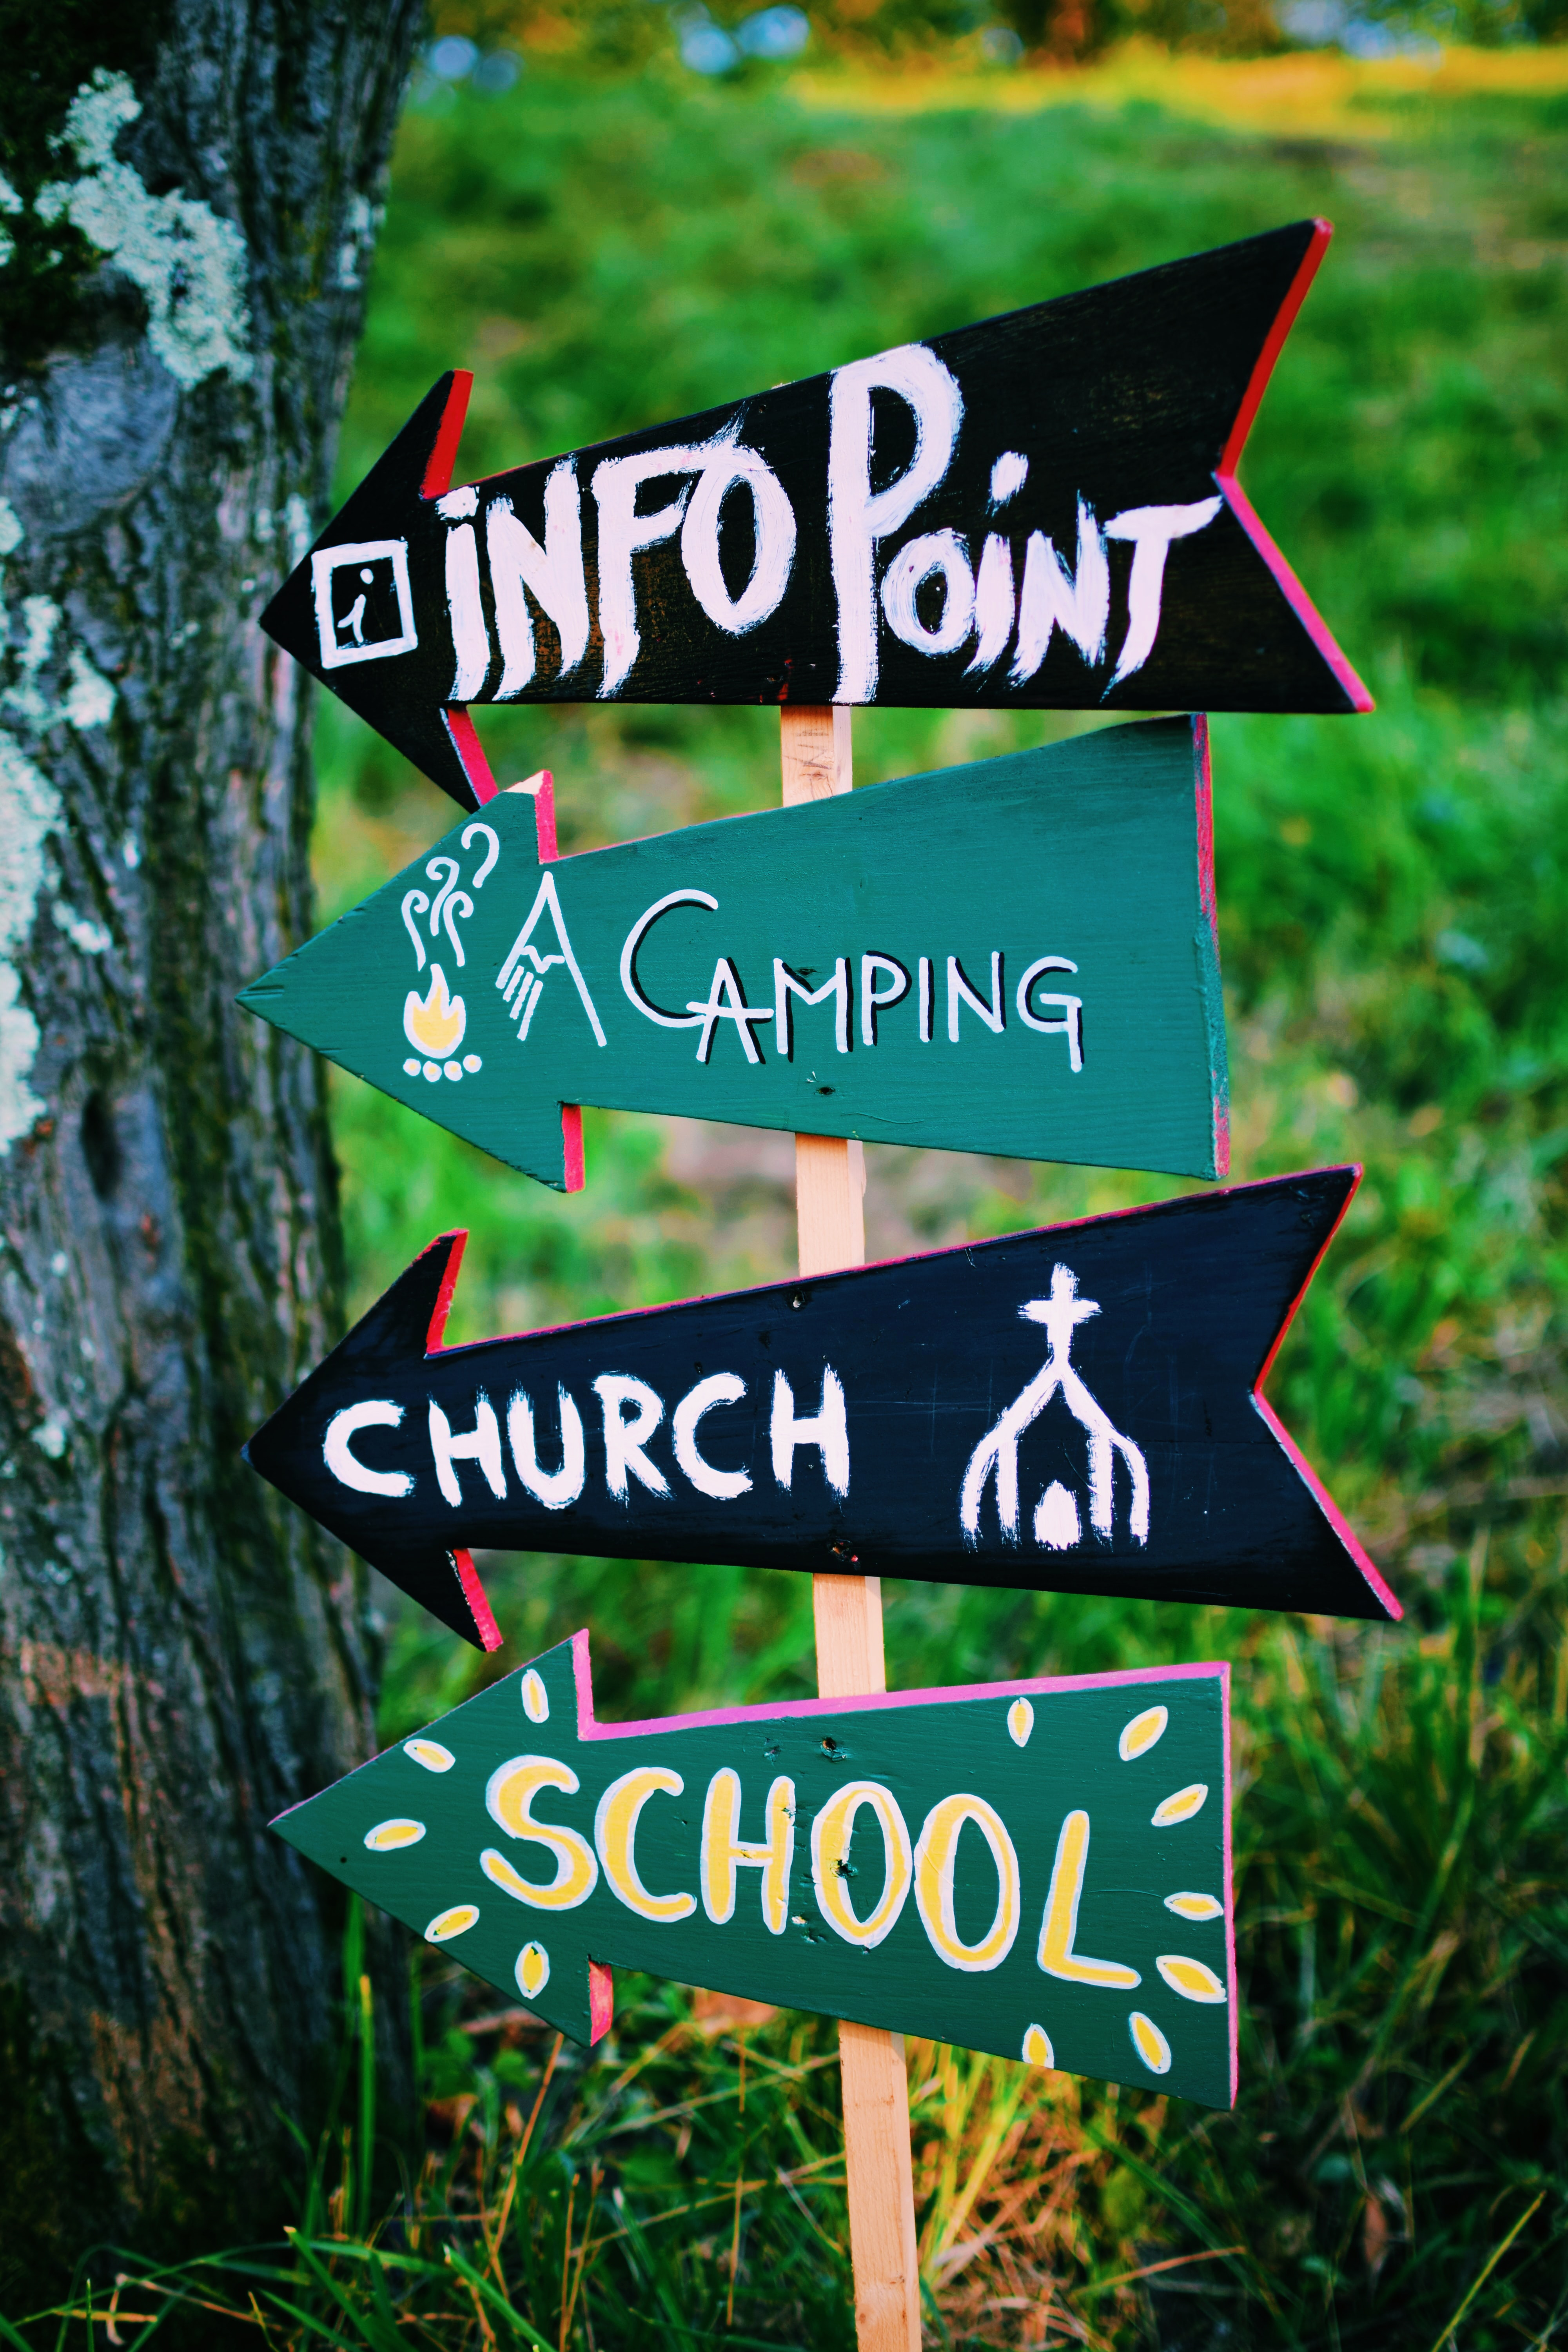 selective focus photography of Info point, camping, church and school signage on the left